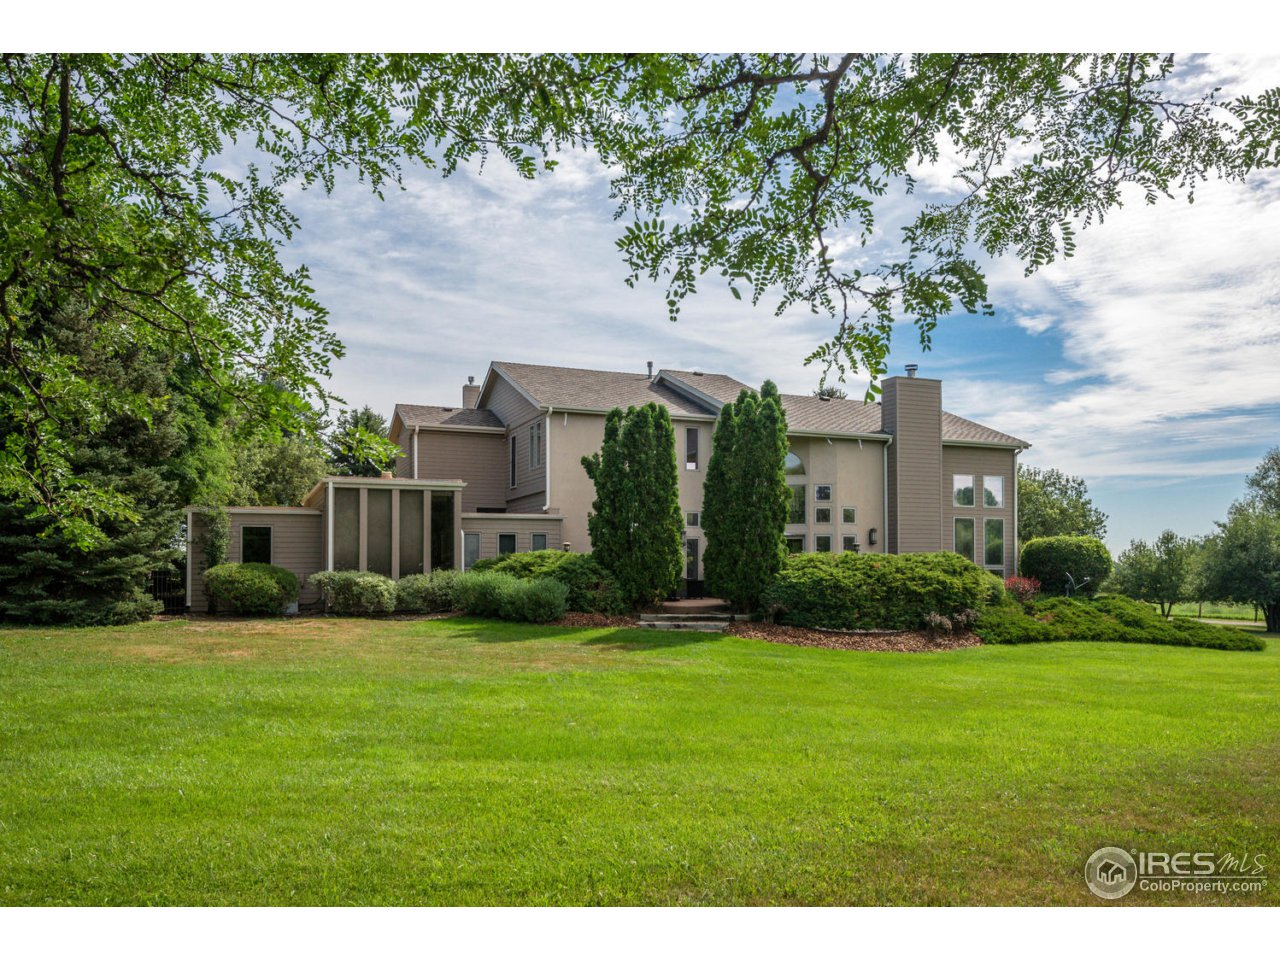 5206 Fossil Creek Dr, Fort Collins, CO 80526